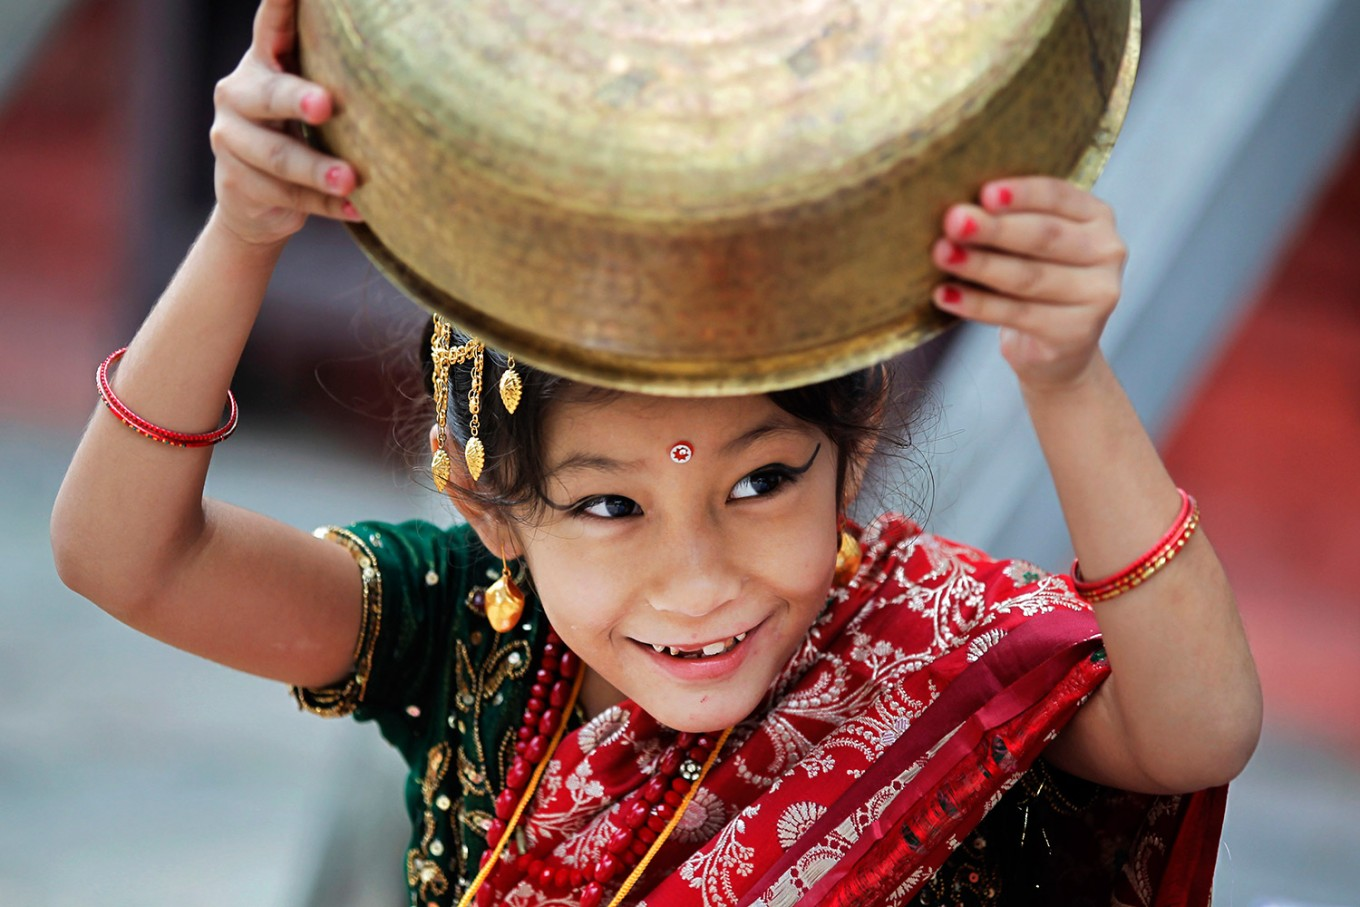 A young Nepalese girl wearing traditional attire plays with a vessel while waiting for the Kumari puja to start at Hanuman Dhoka temple, in Kathmandu, Nepal, Wednesday, Sept. 14, 2016.  AP Photo/Niranjan Shrestha